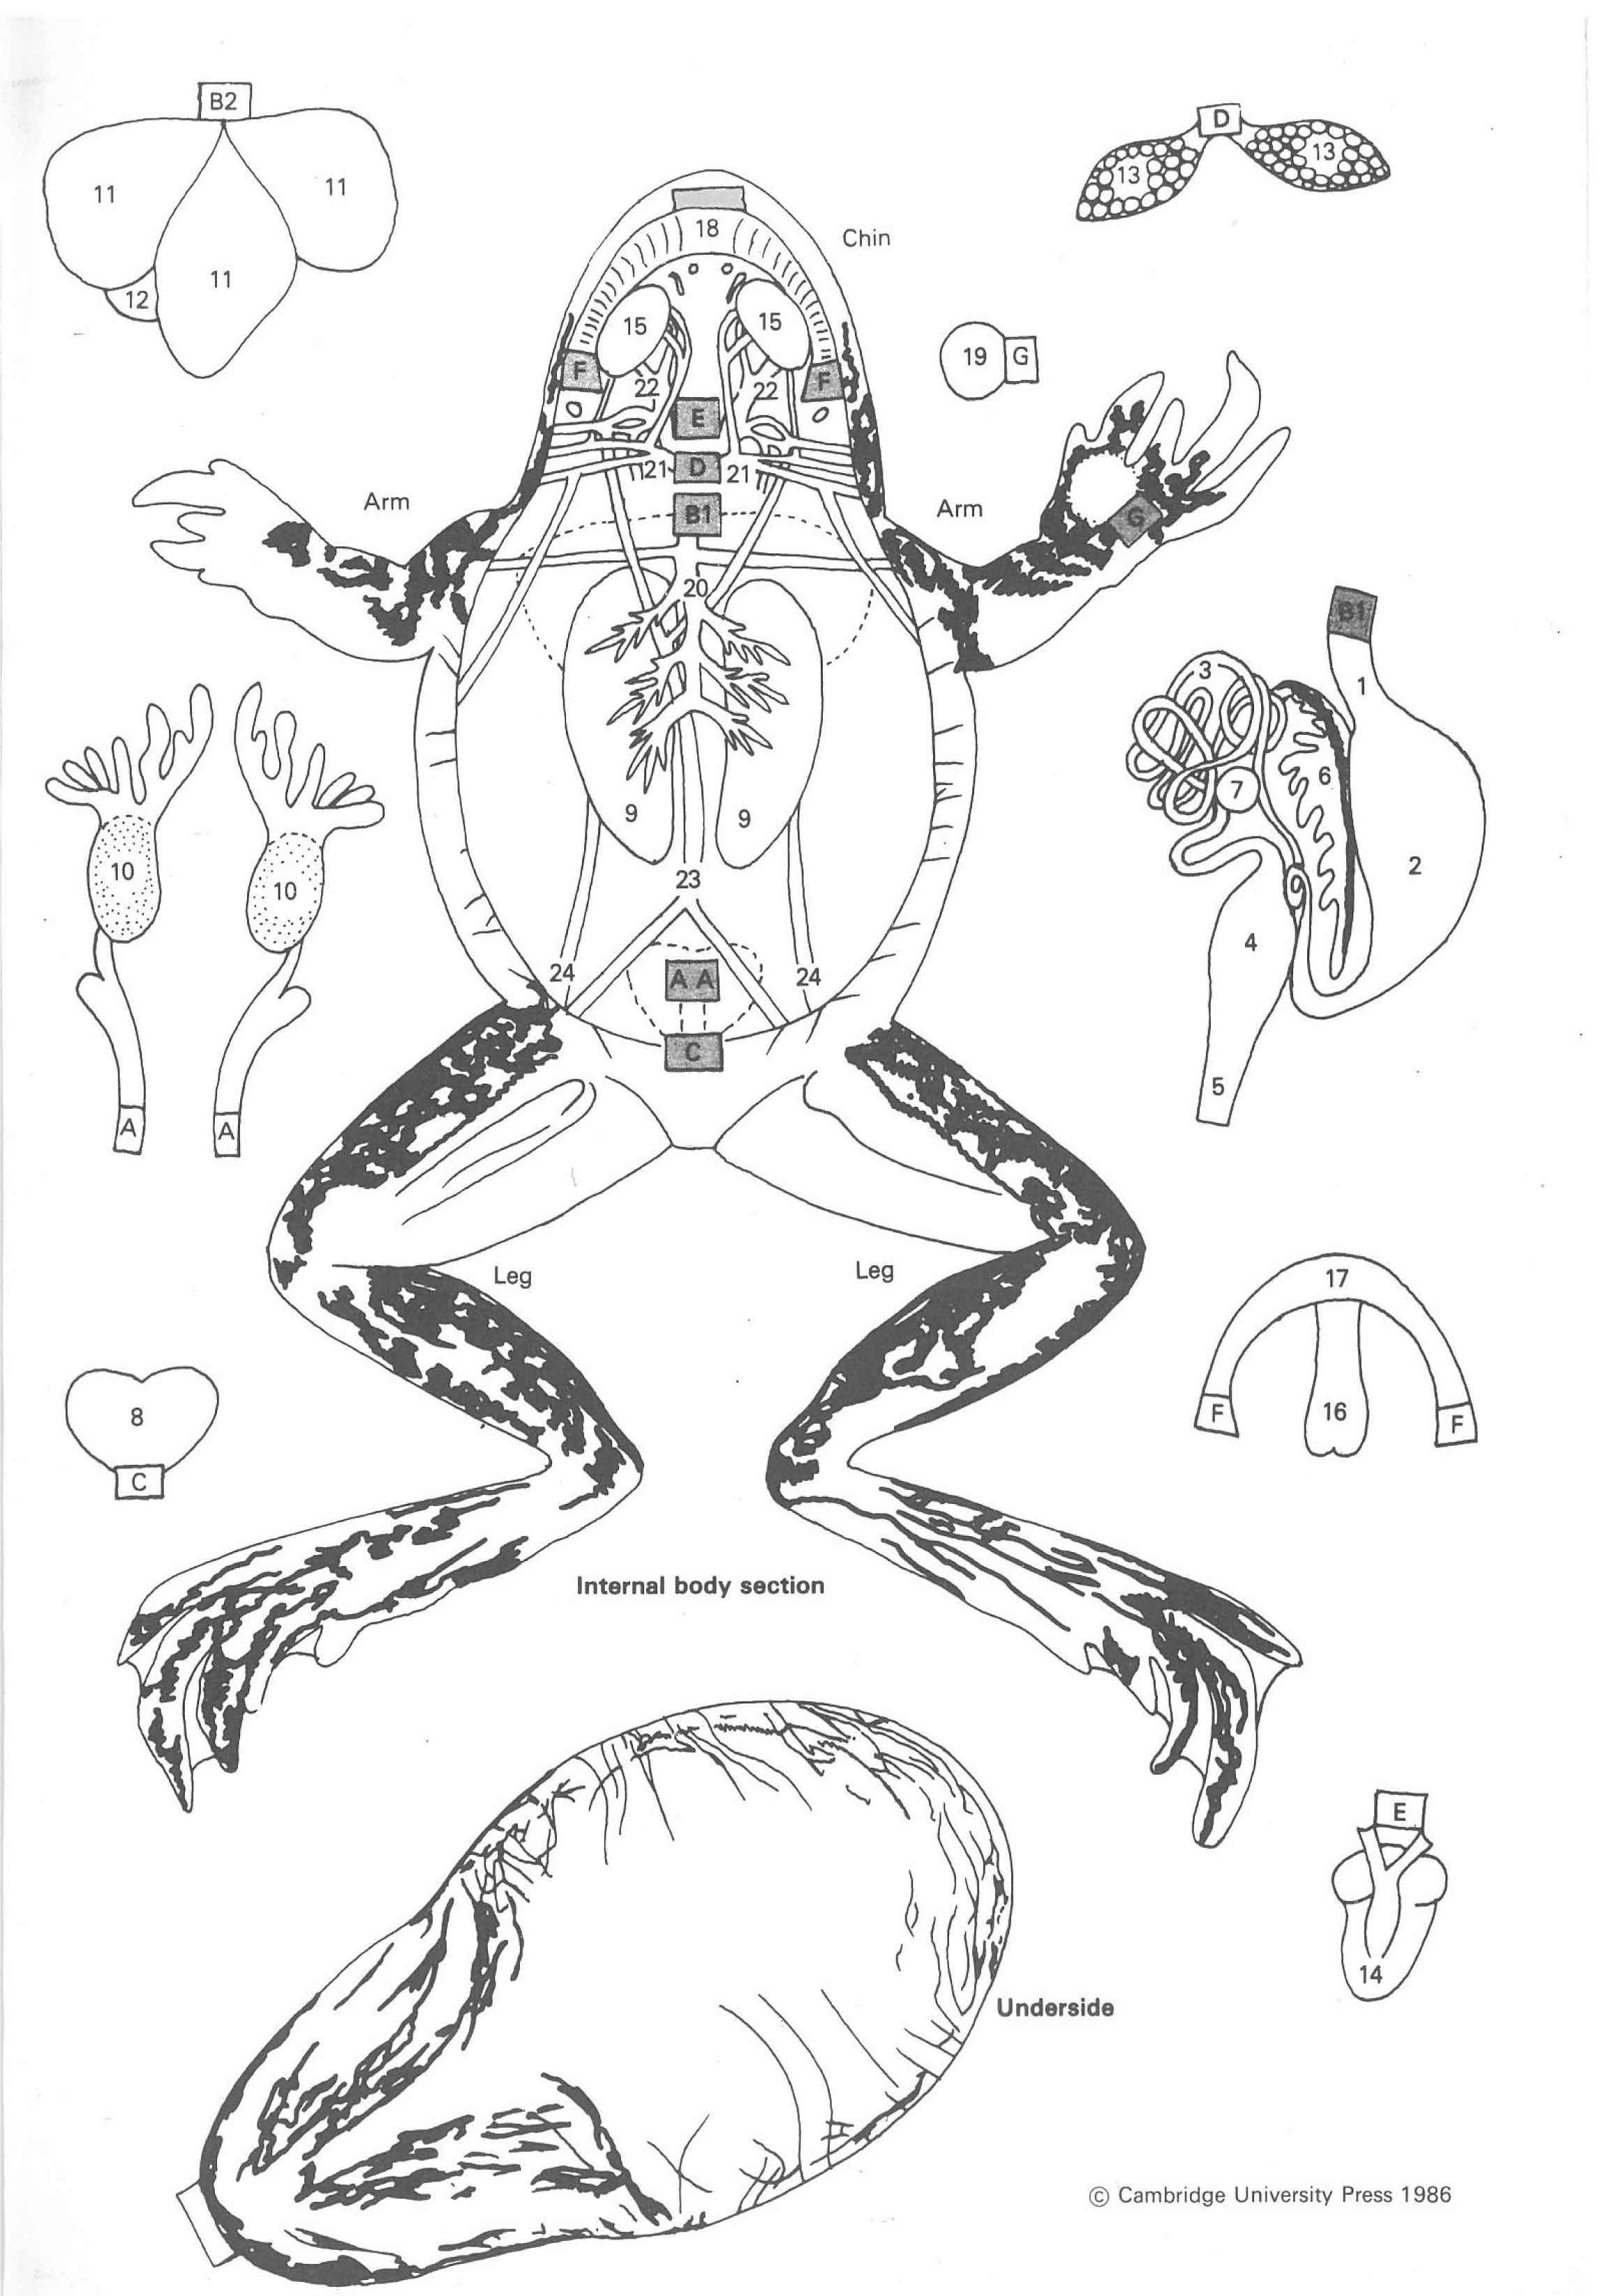 Paper Frog Dissection Diagram Organs - Auto Electrical Wiring Diagram •